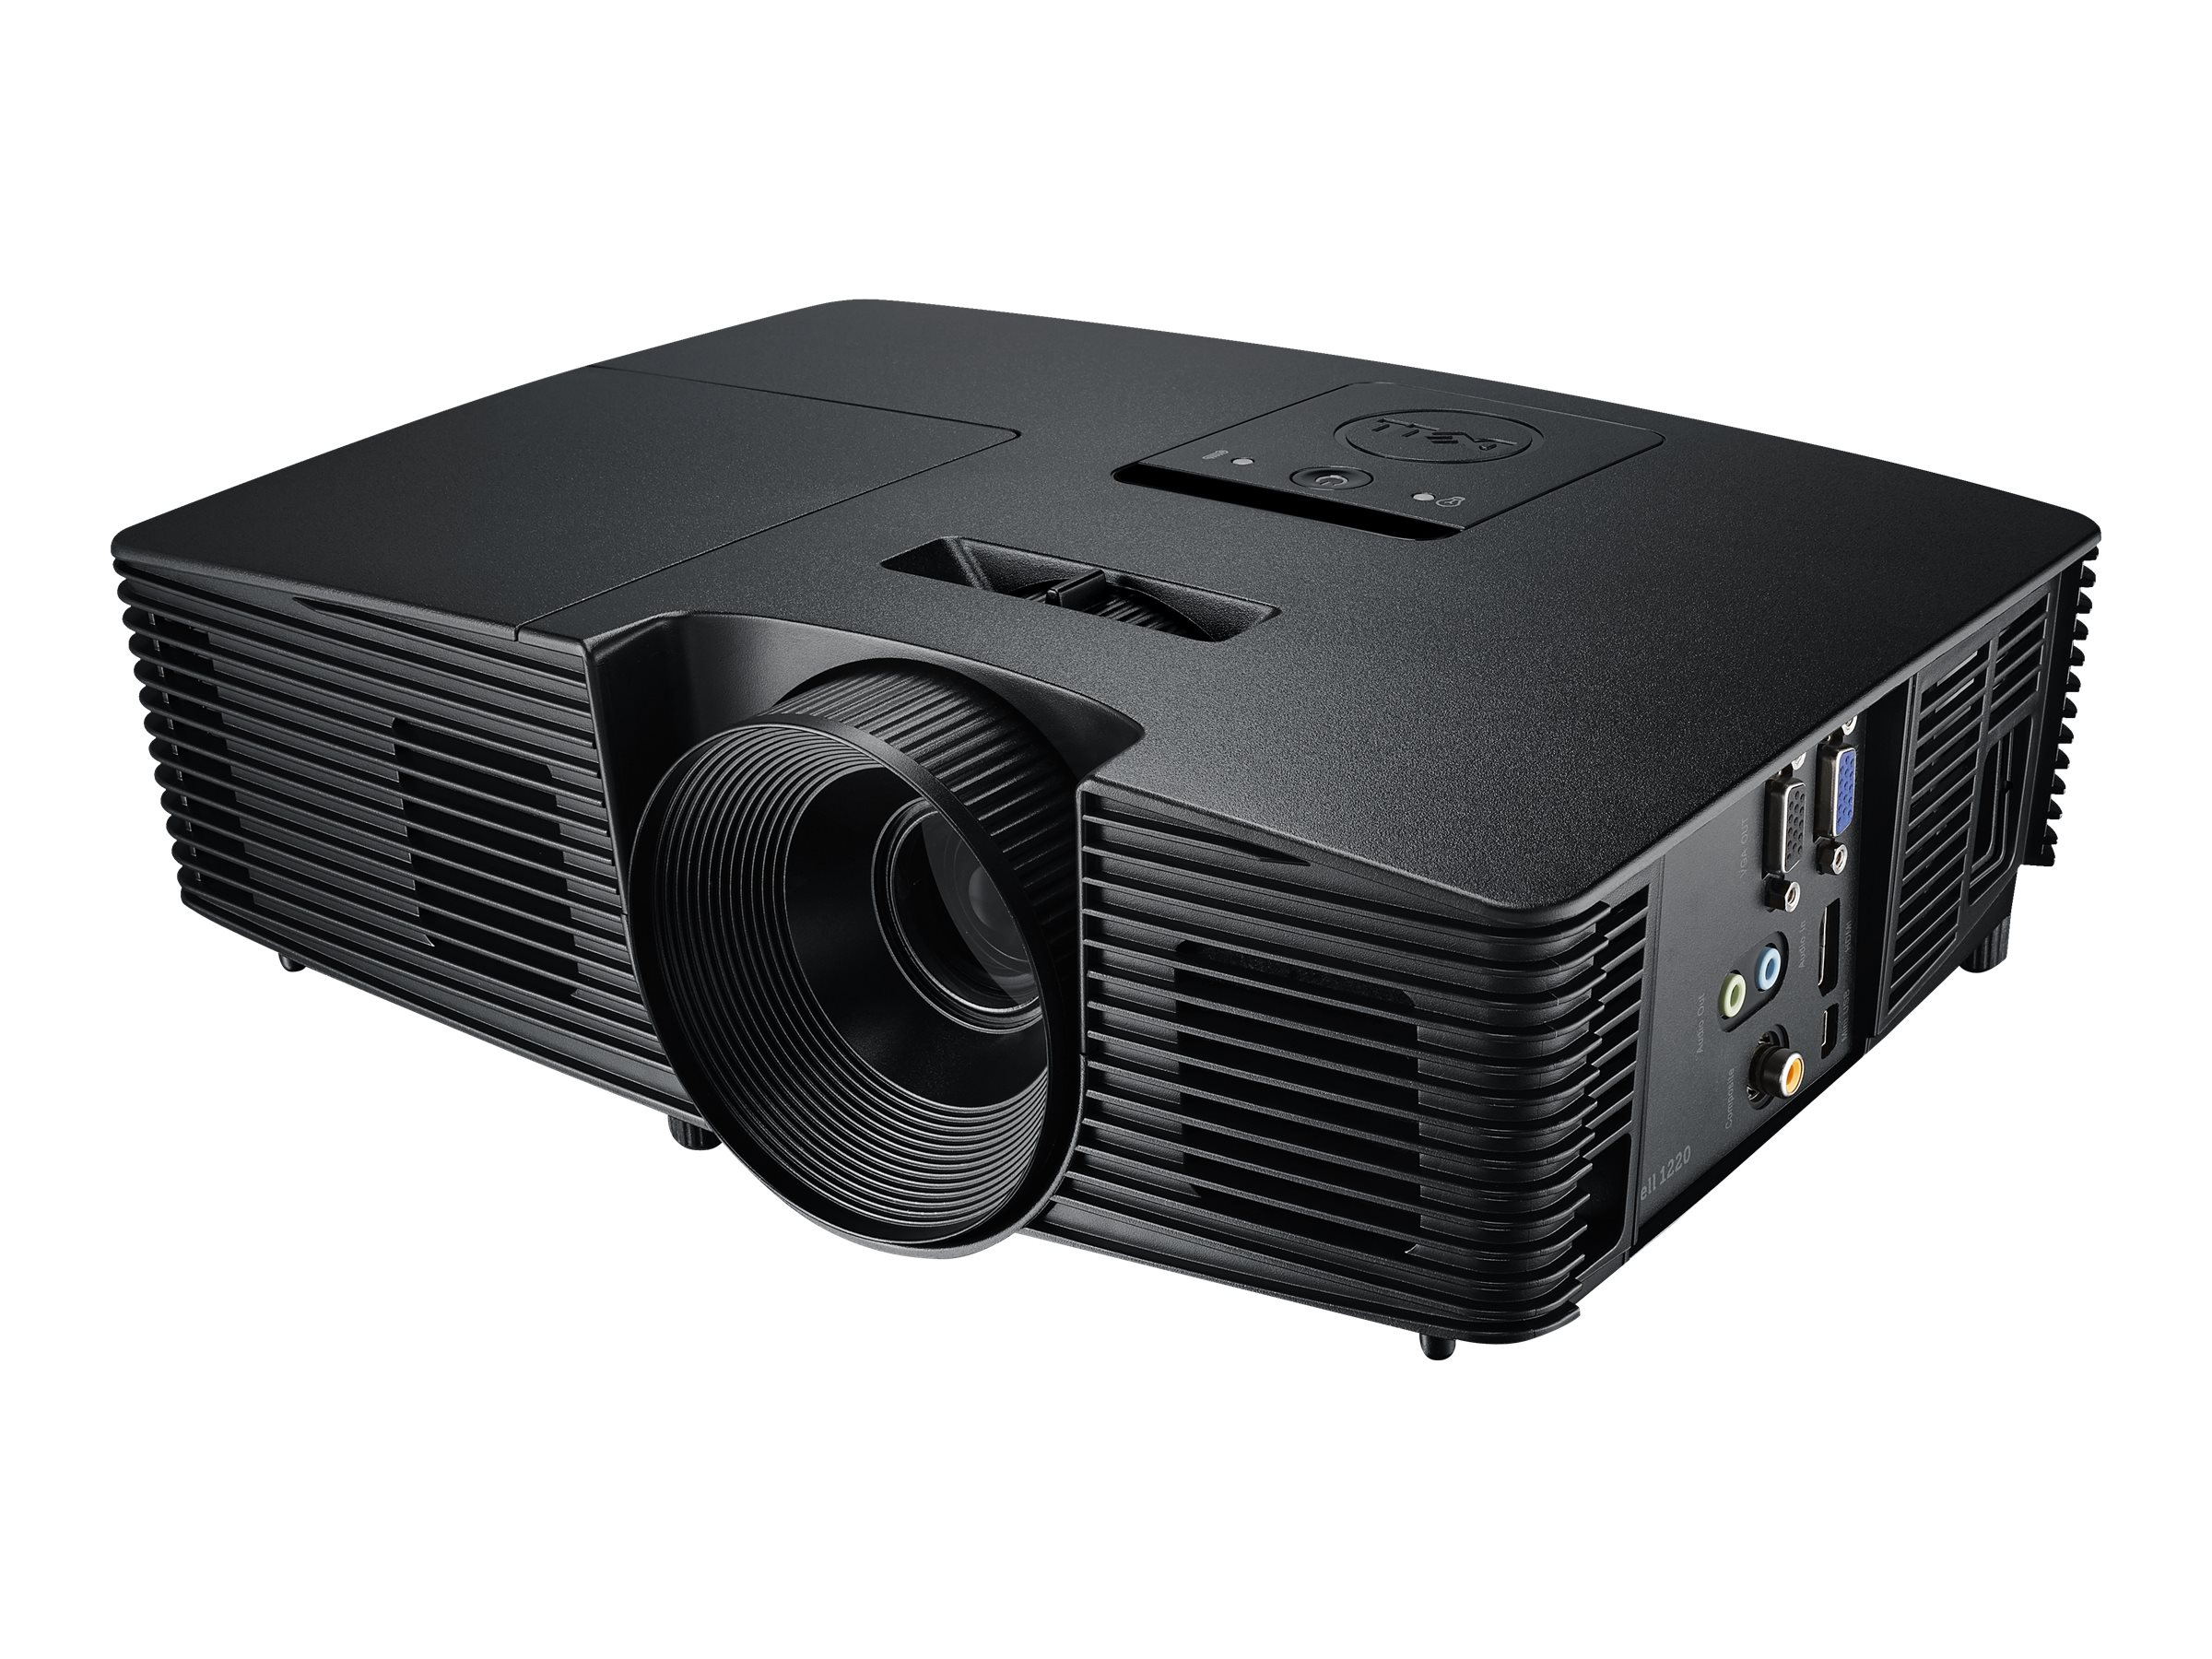 Dell 1220 SVGA DLP Projector, 2700 Lumens, Black